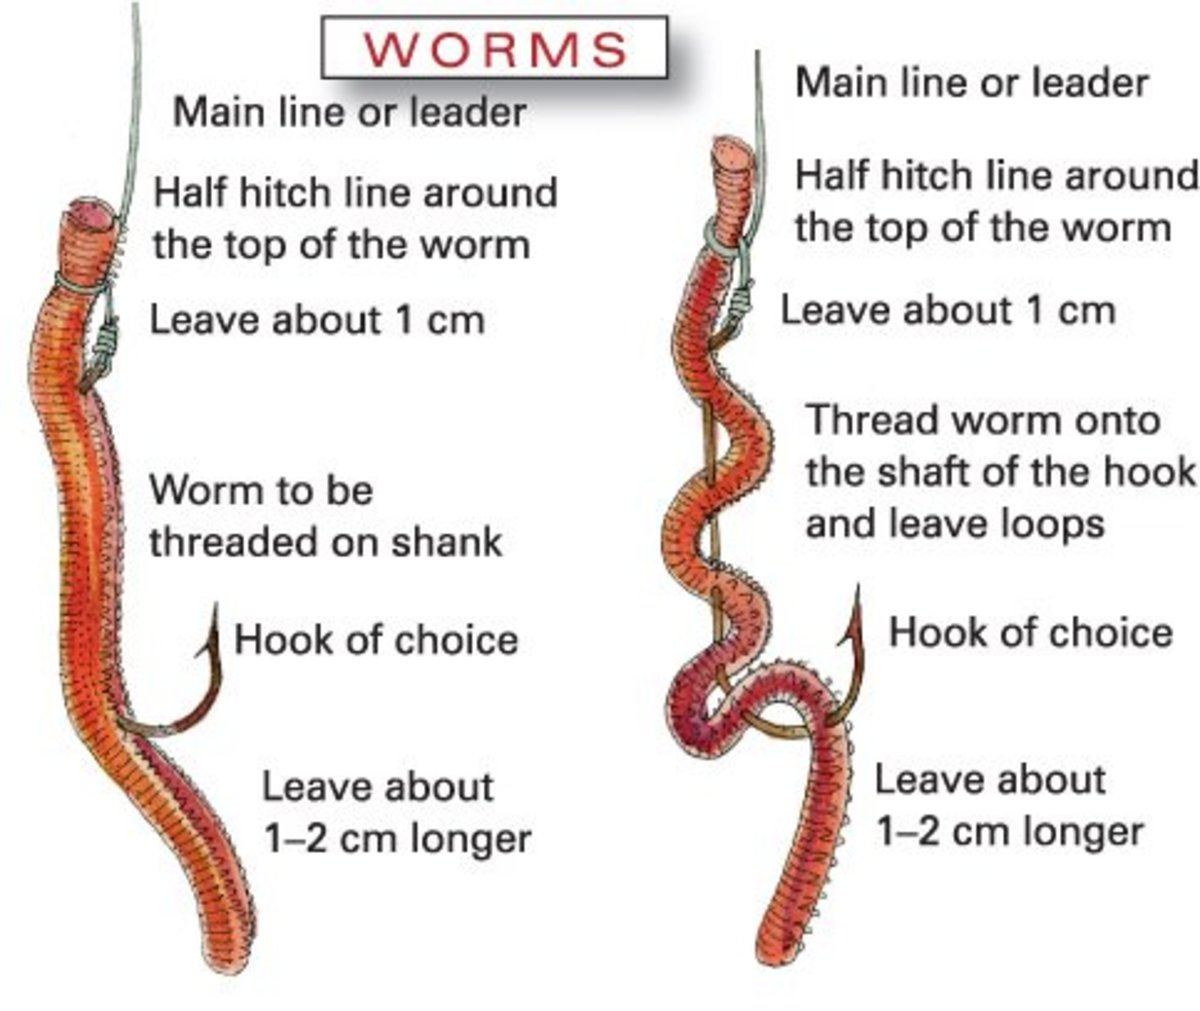 How to raise earthworms for easy money toughnickel for Red worms for fishing